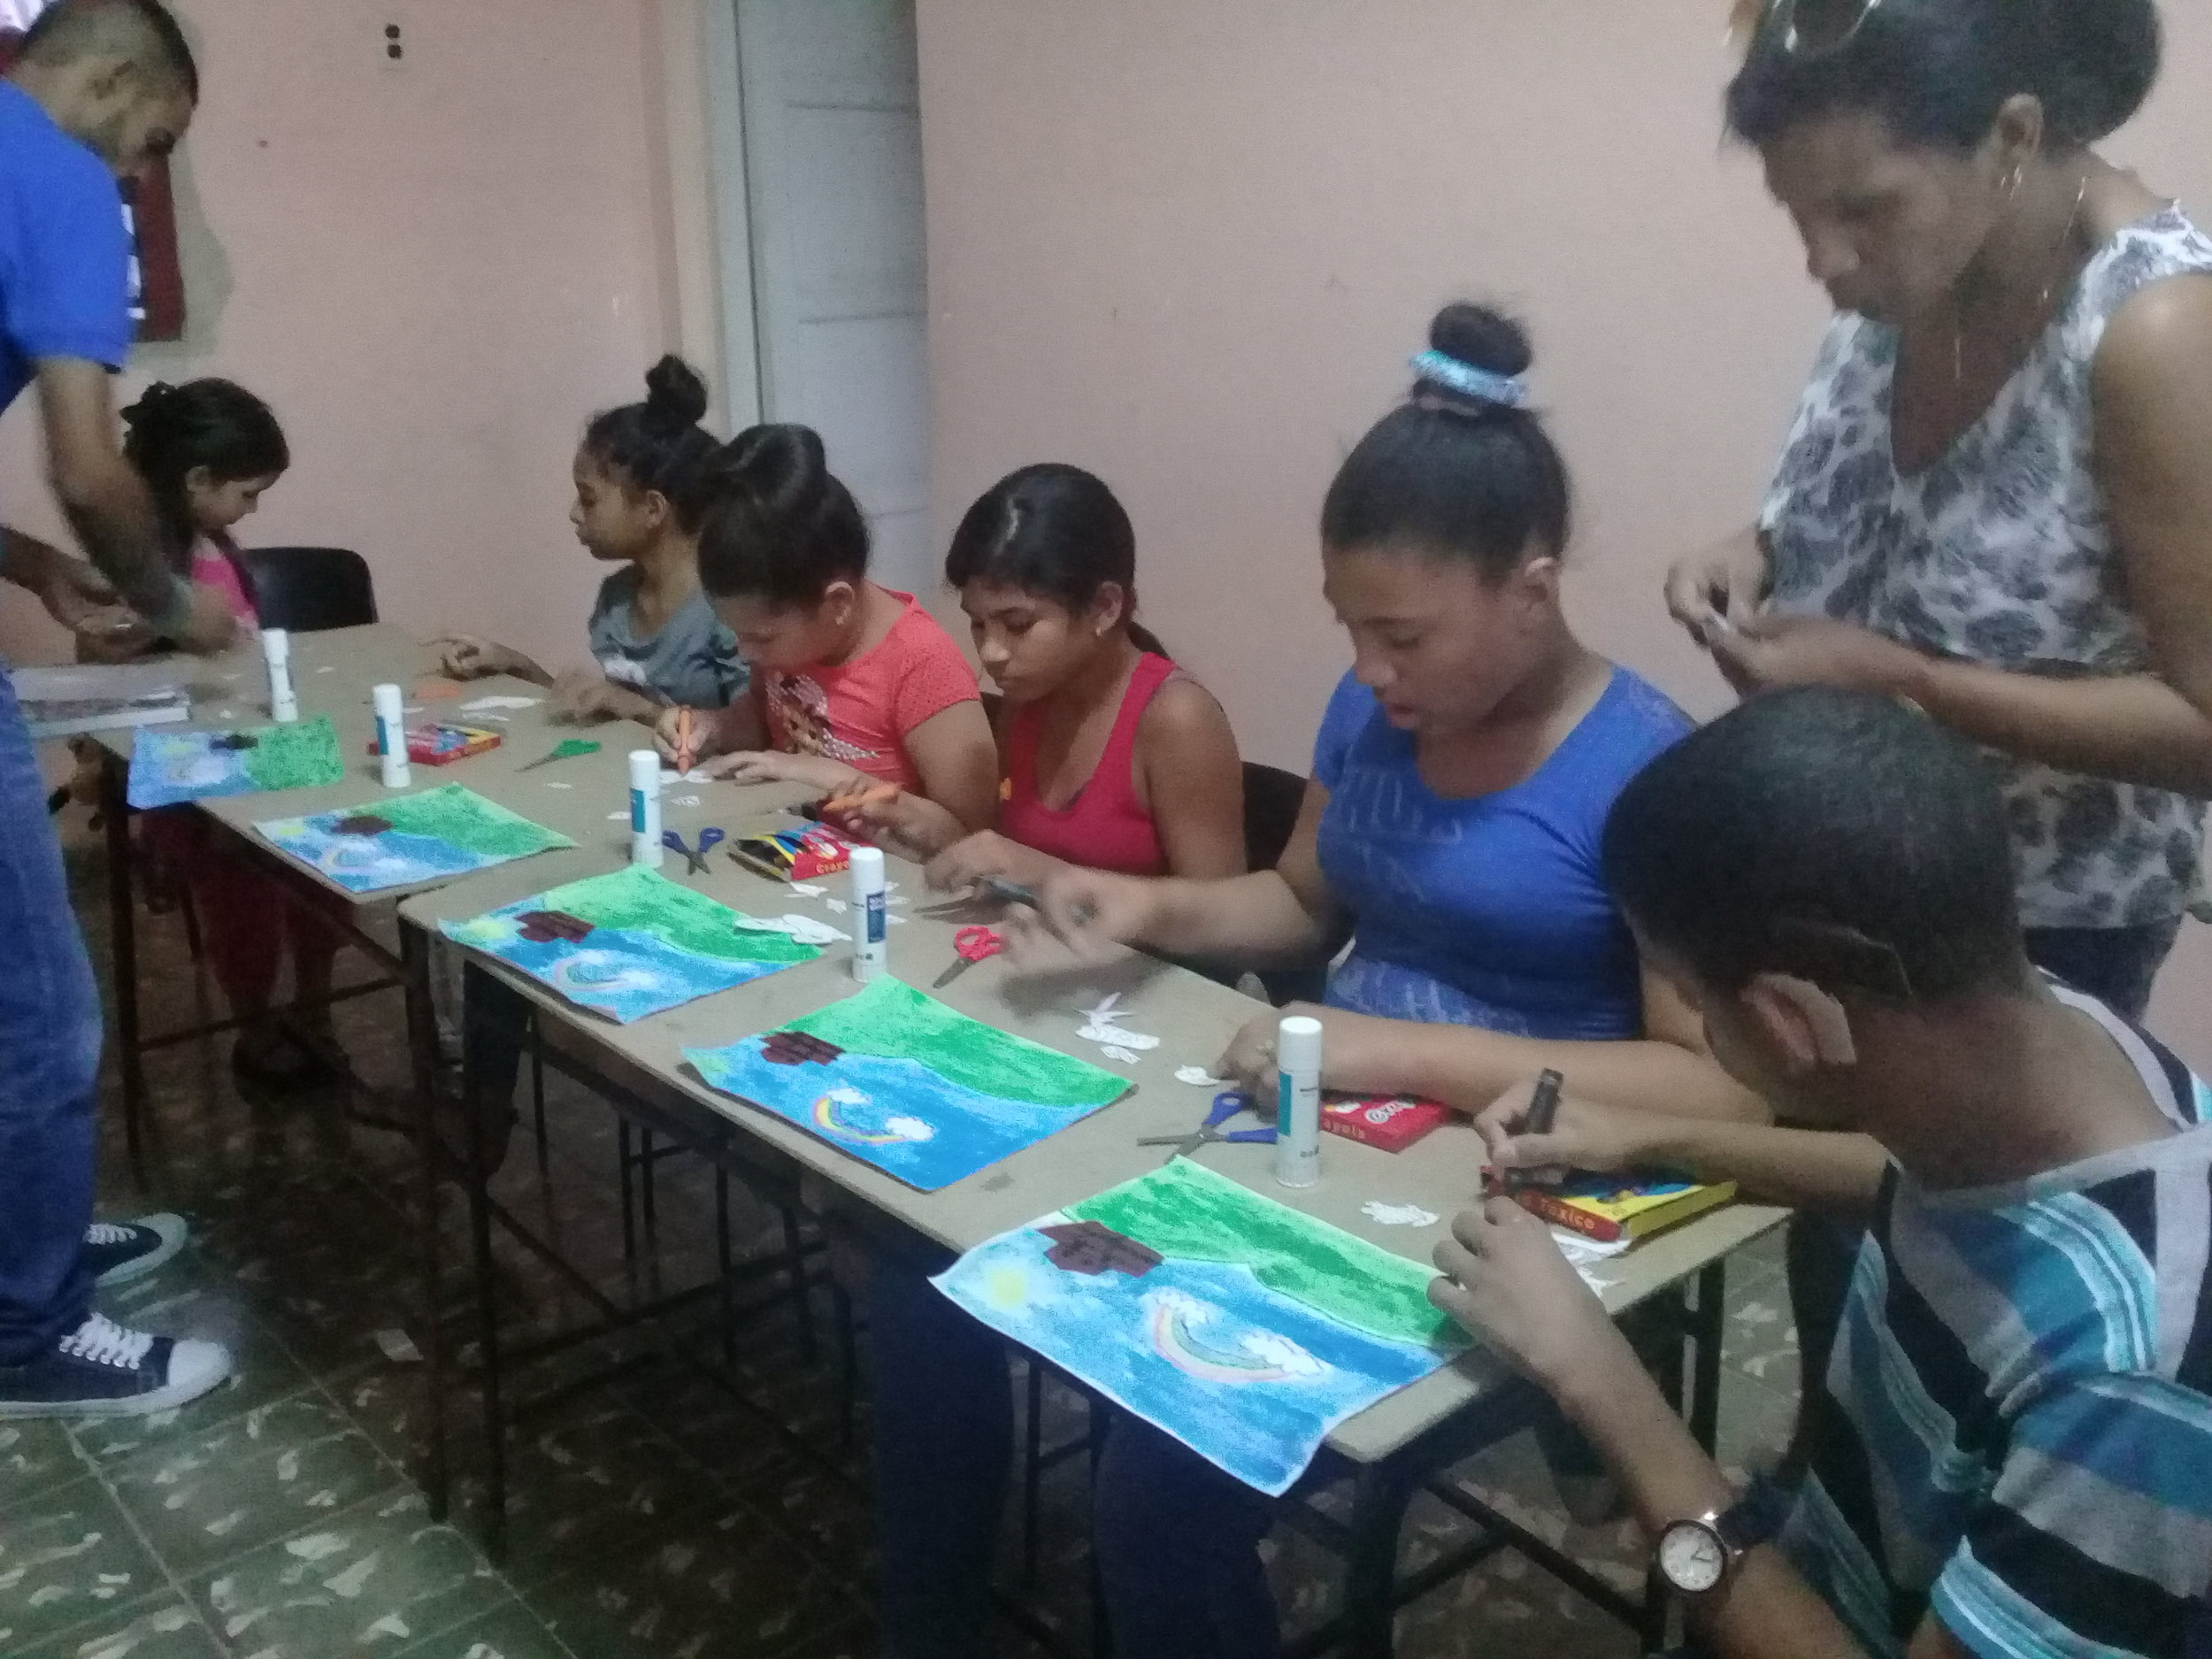 Deaf youth putting bible stories into crafts